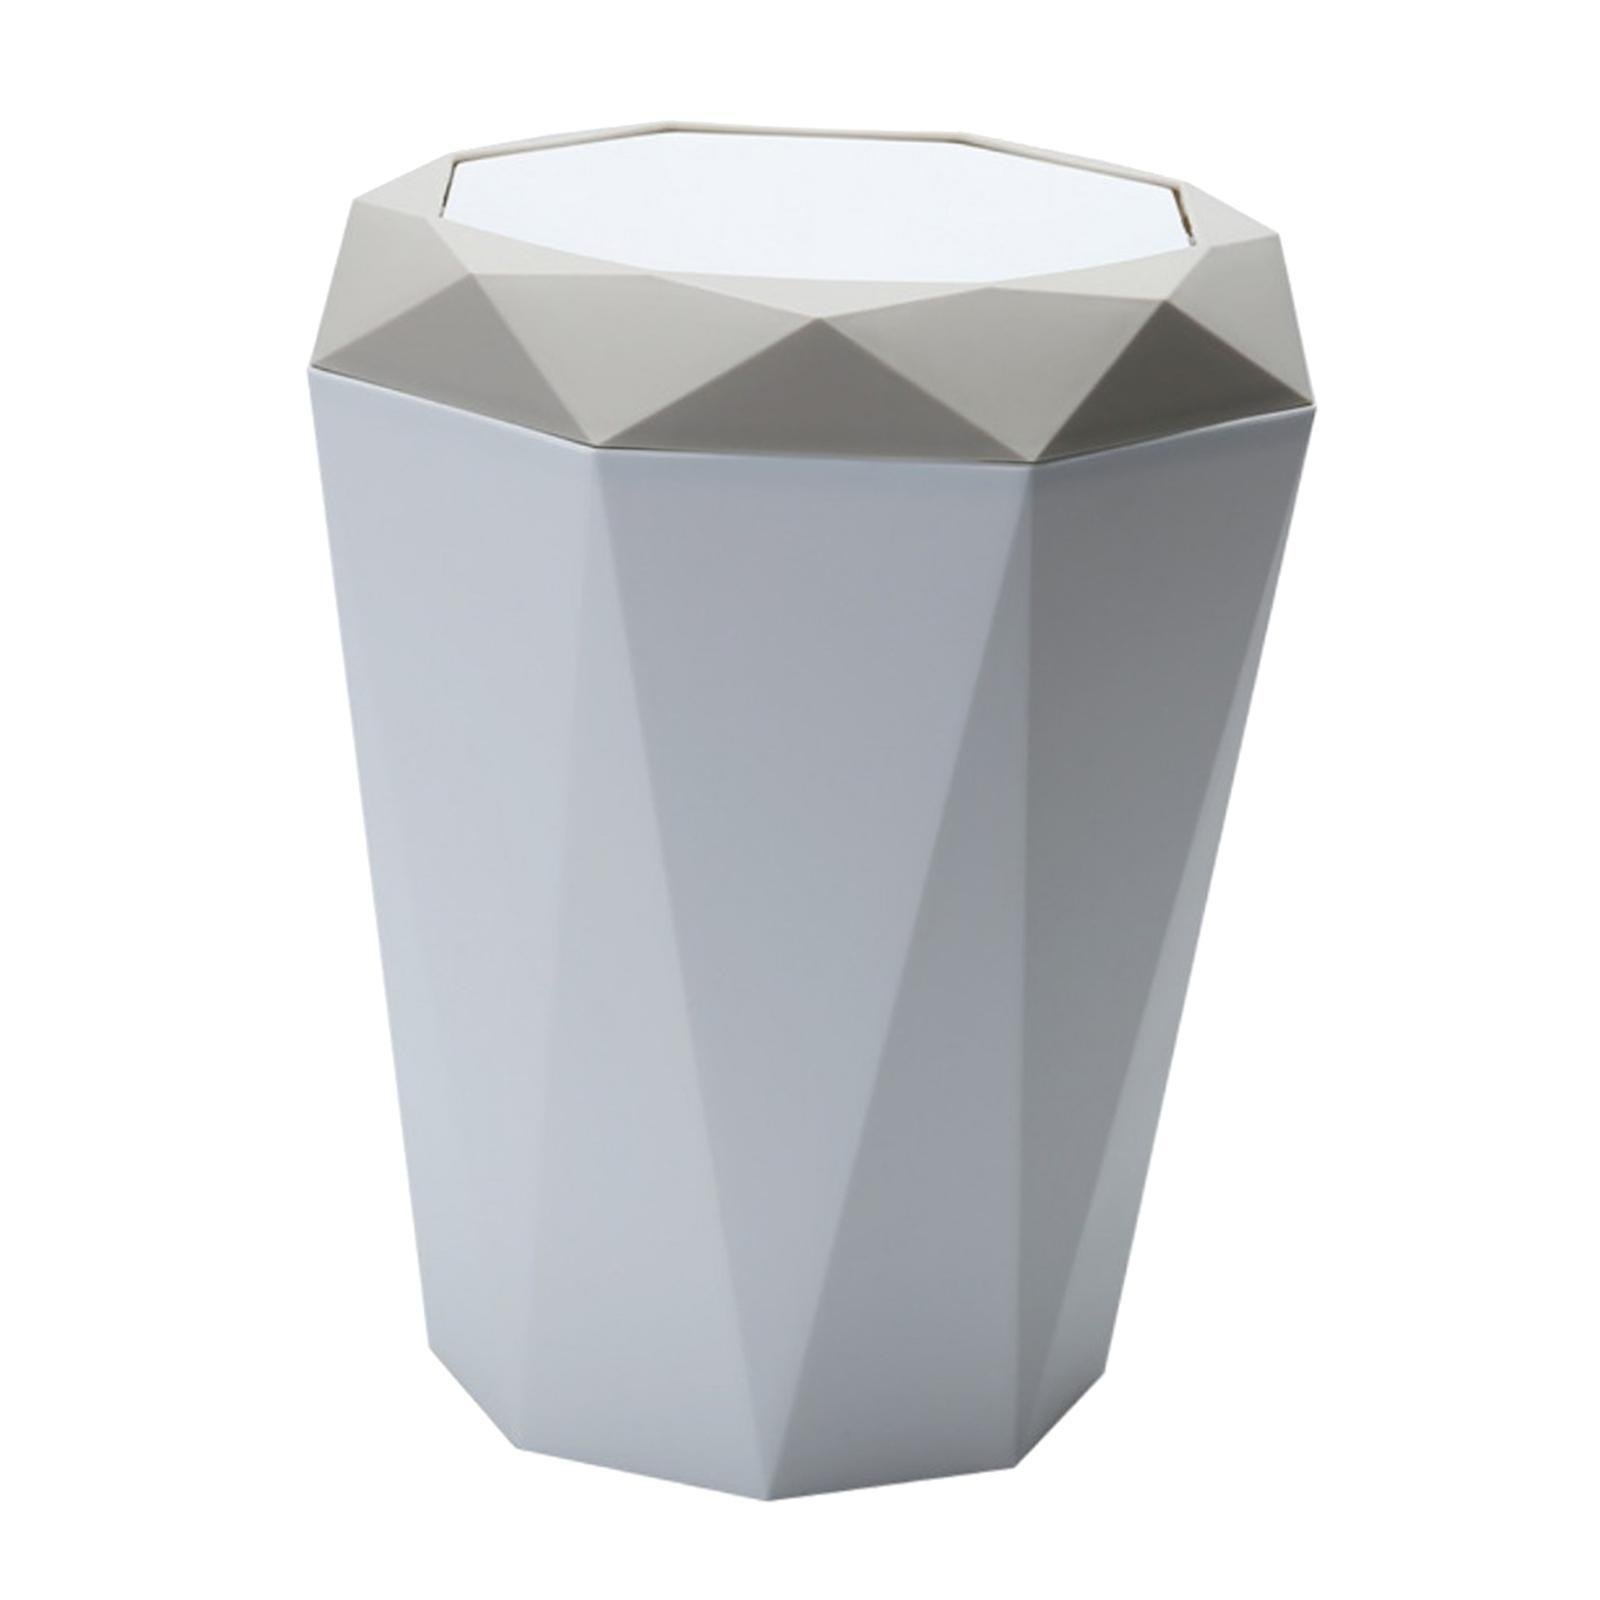 Plastic Trash Can Ash Bin Waste Paper Container Lid